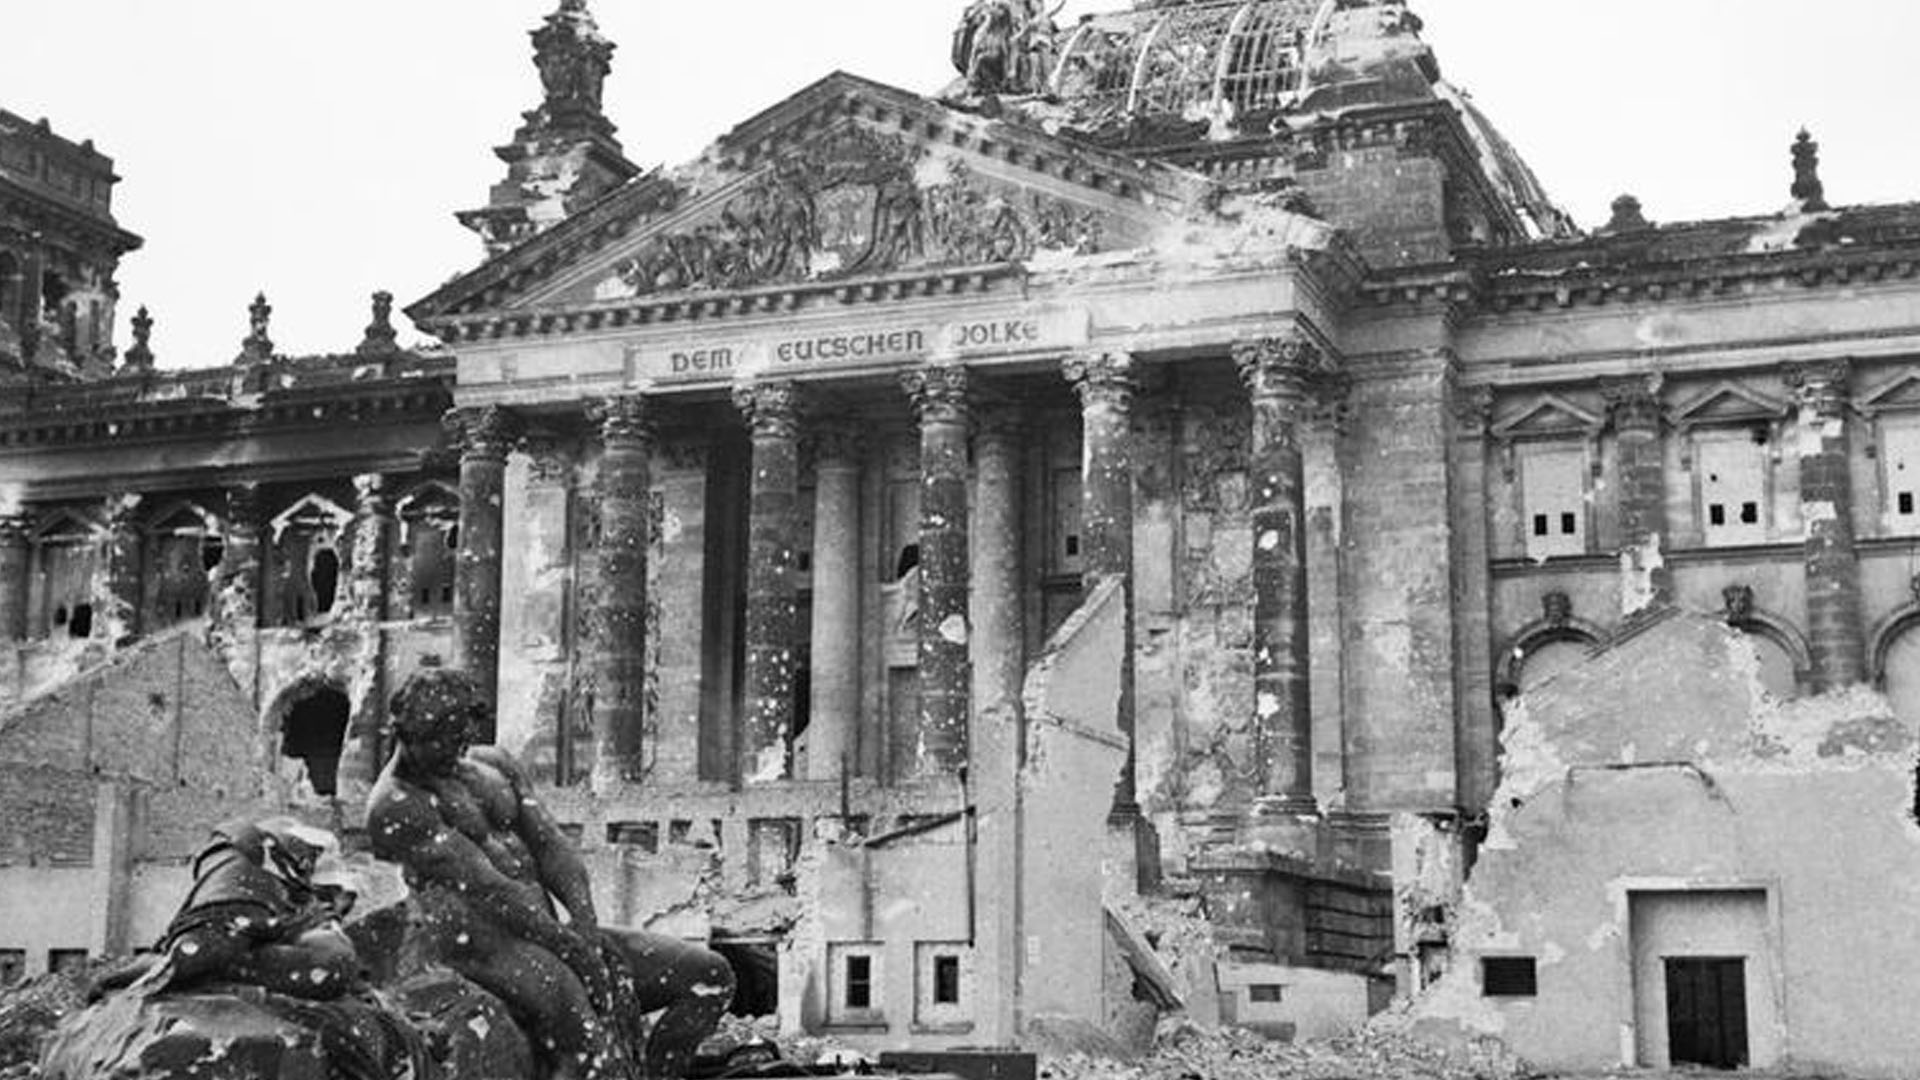 The Reichstag Building in Berlin 1945